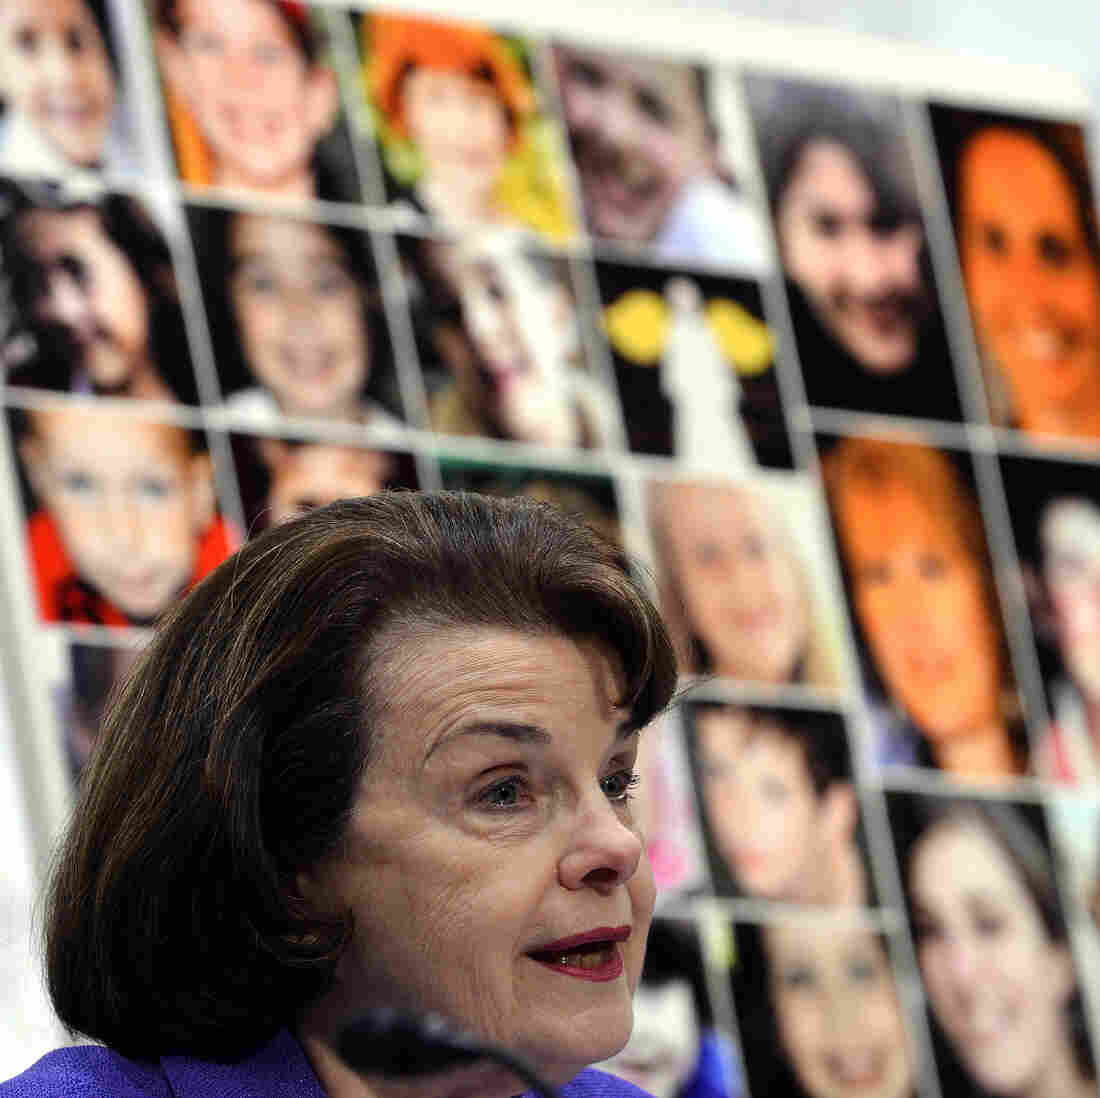 'I Am Not A Sixth Grader': Sens. Feinstein, Cruz Spar On 2nd Amendment